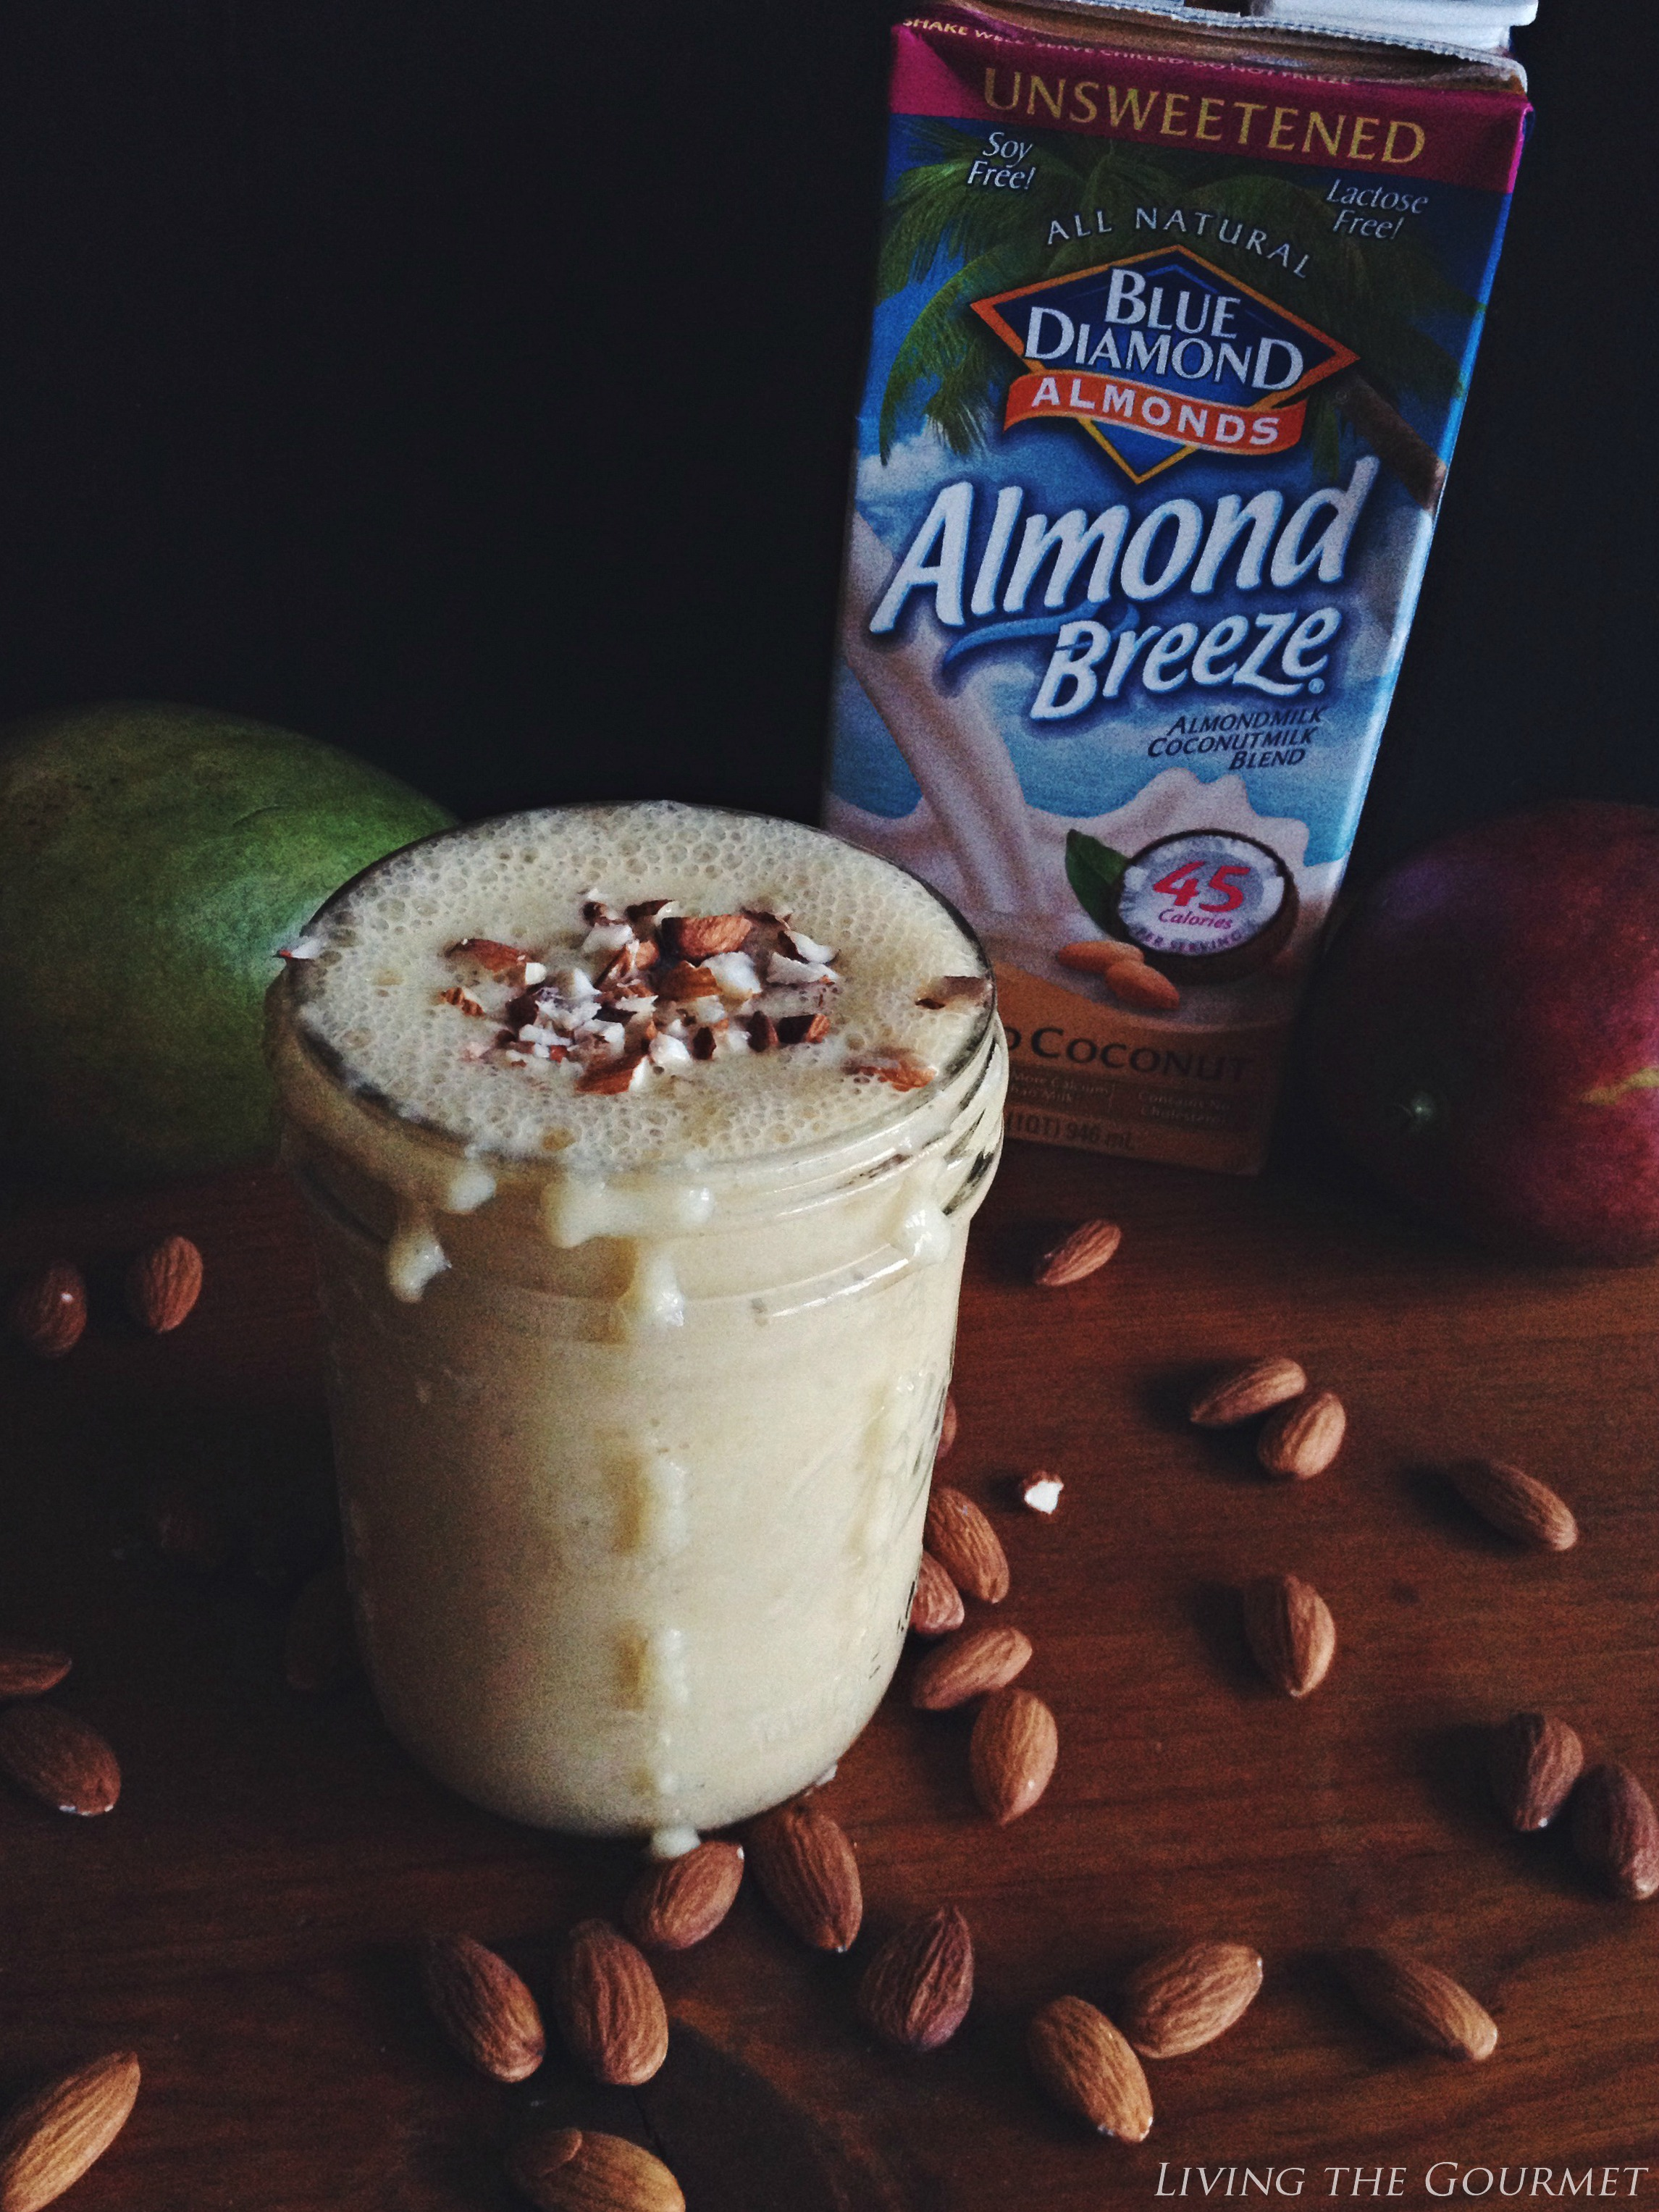 Living the Gourmet: Blue Diamond Almond Milk Tropical Smoothie